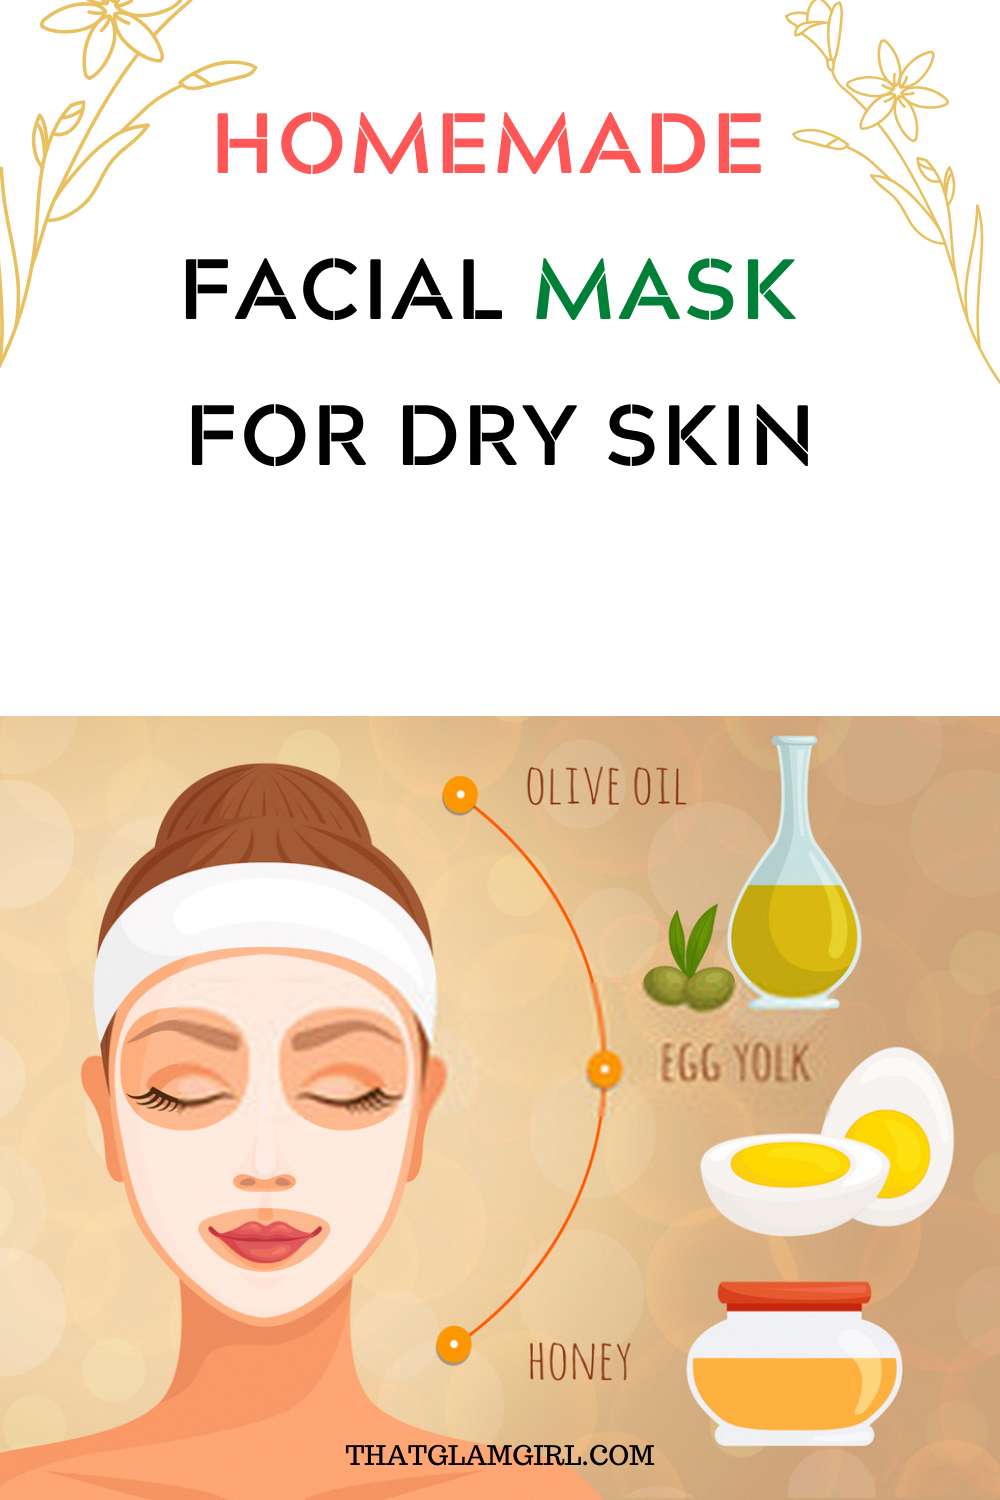 9 inch circle face mask diy in 2020 Mask for dry skin